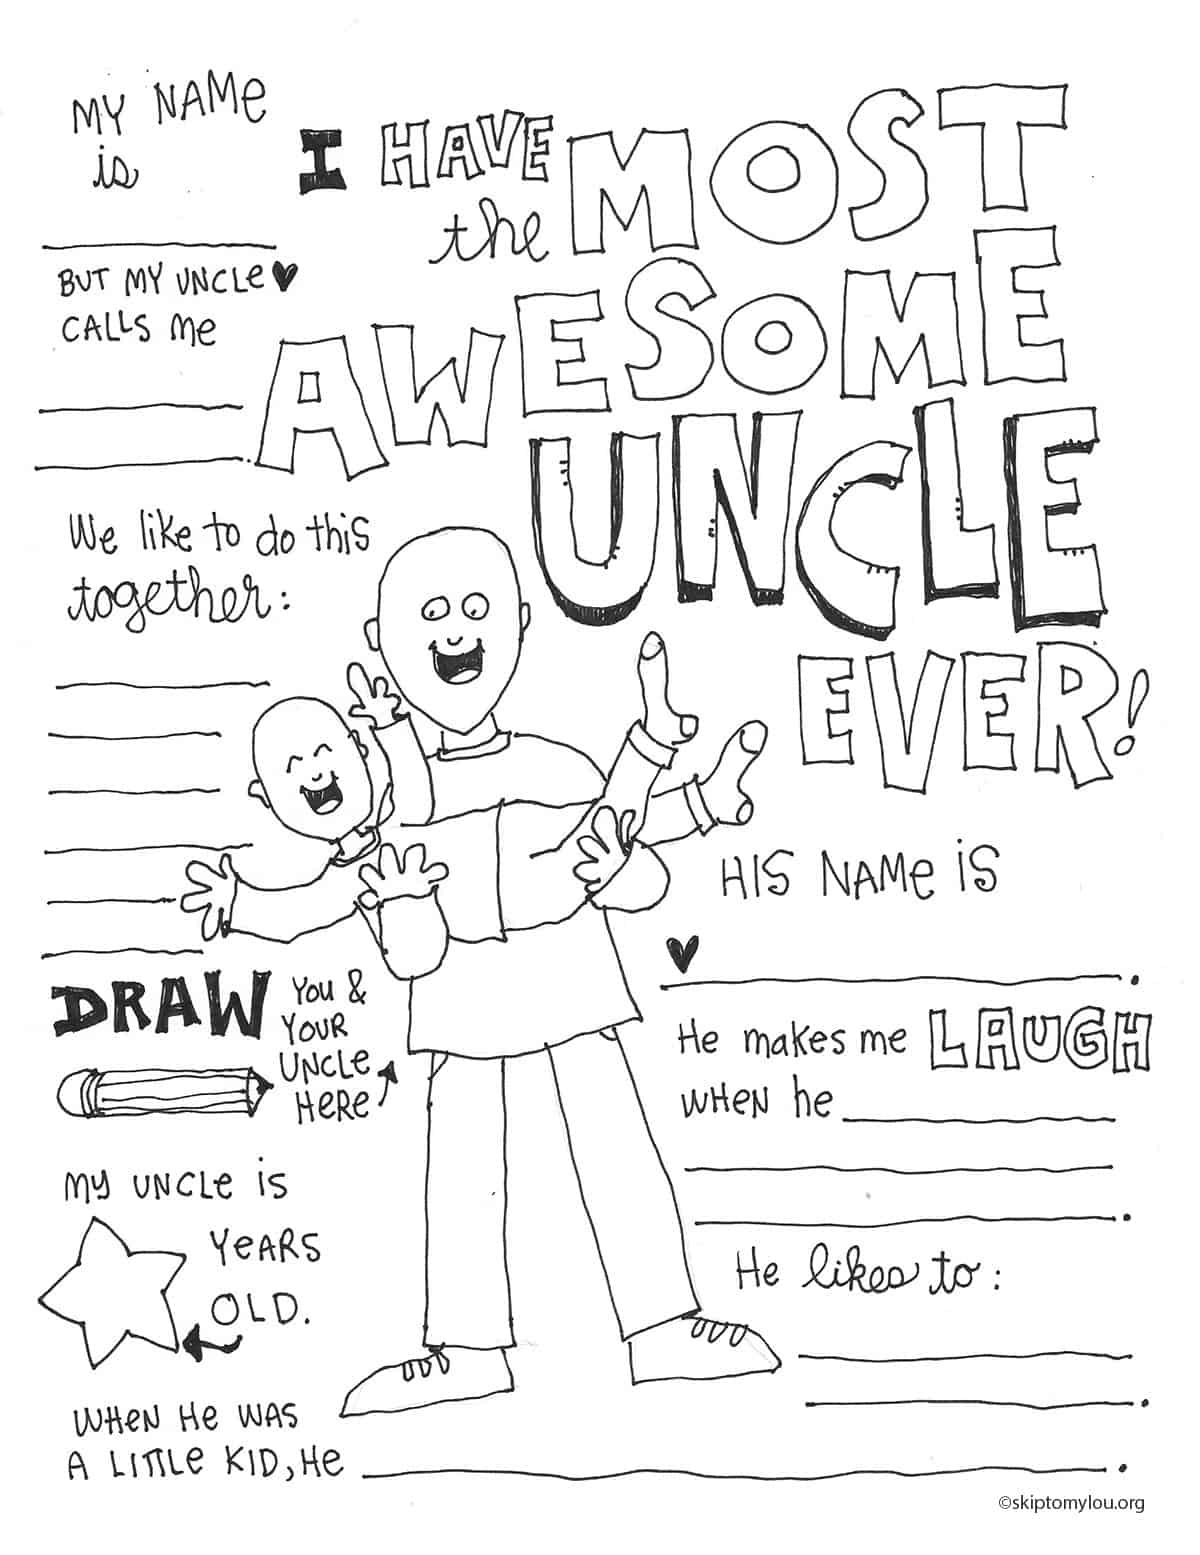 Awesome Uncle Coloring Page | Skip To My Lou